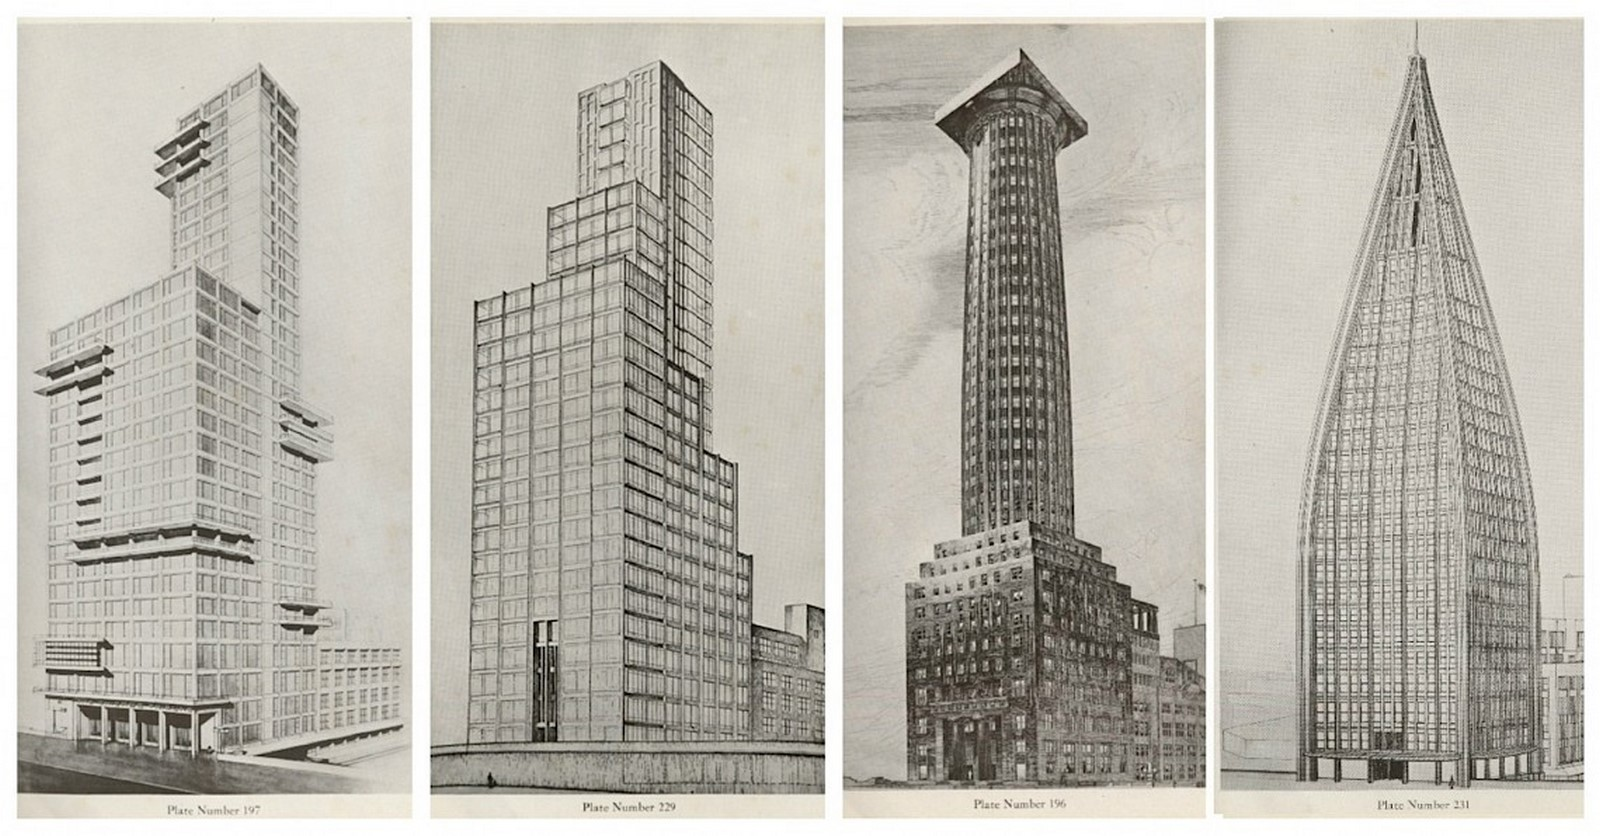 10 things you did not know about Adolf Loos - Sheet3